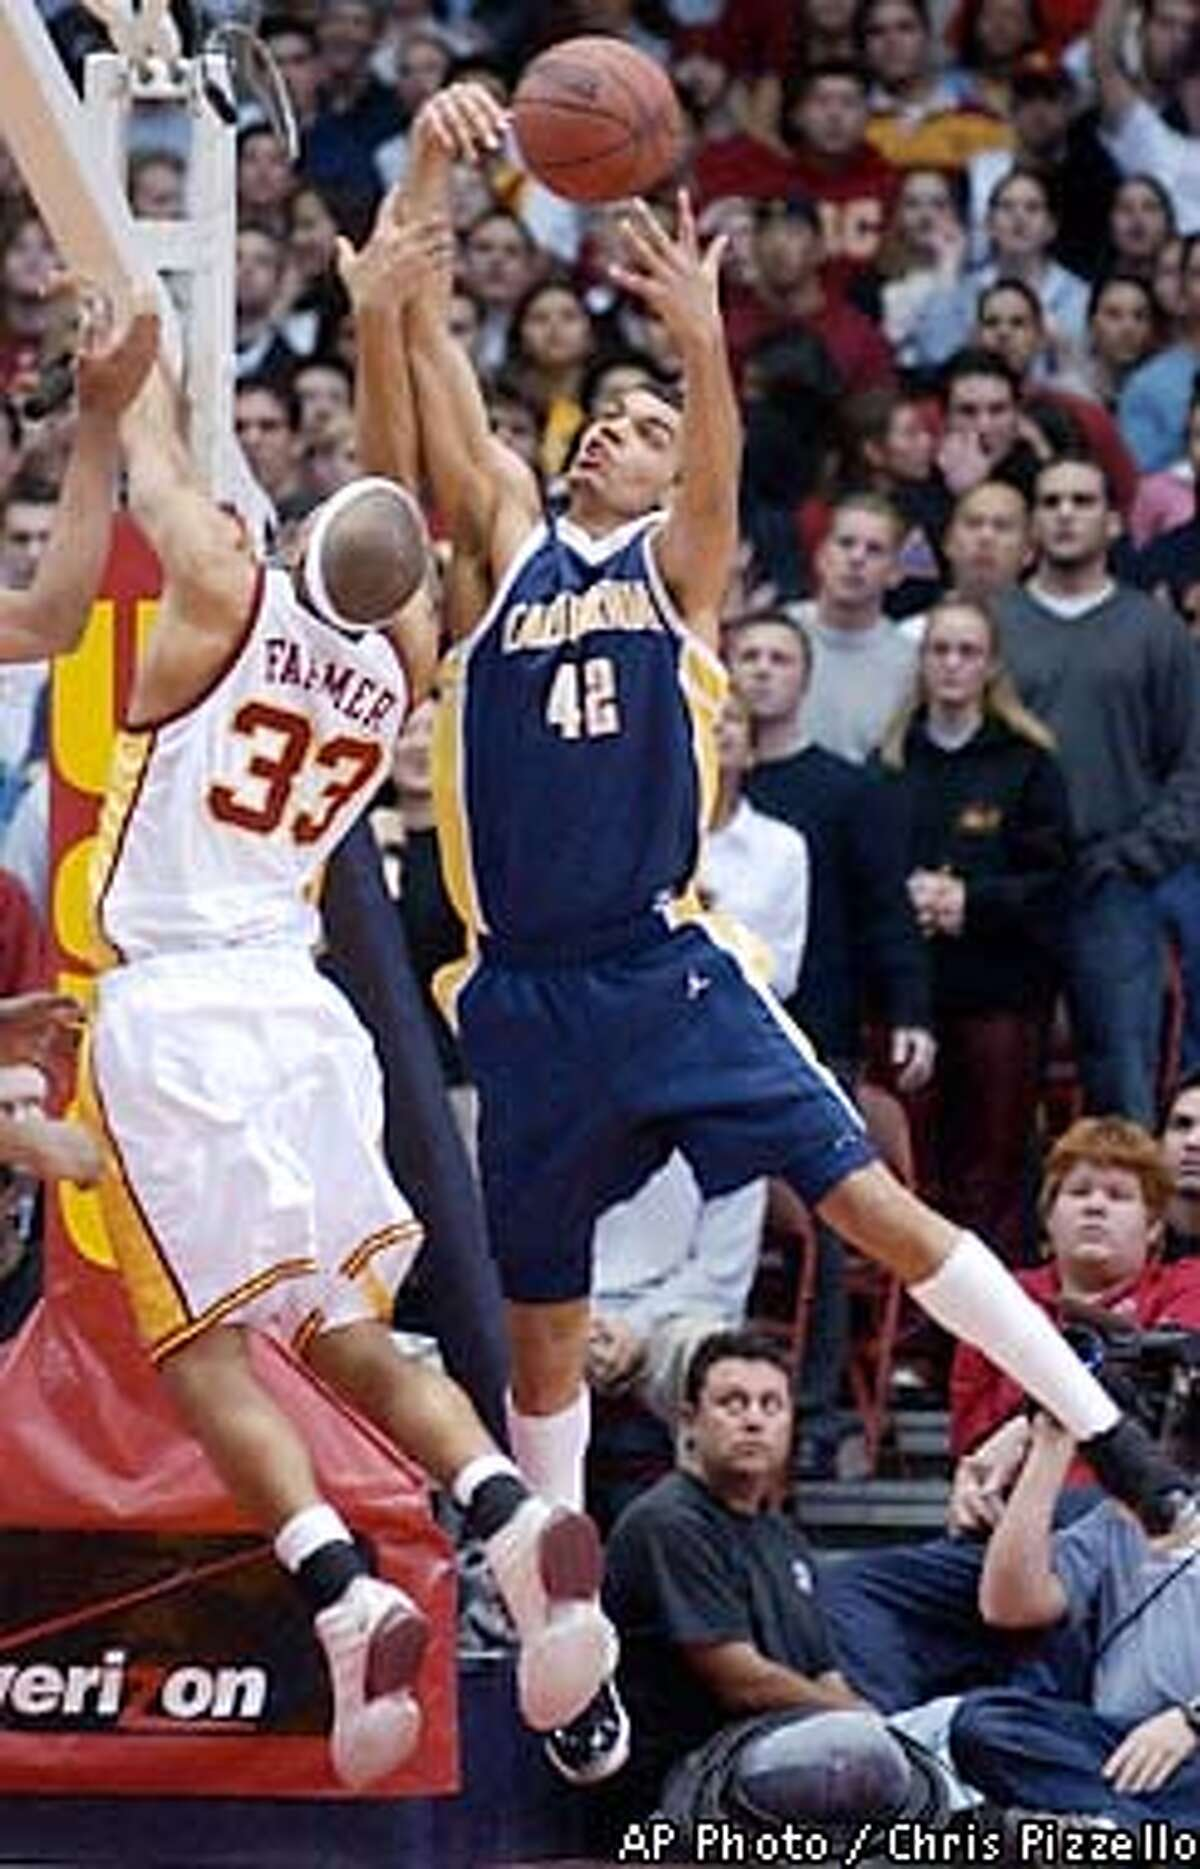 California's Ryan Forehan-Kelly, right, tips a rebound away from Southern California's Desmon Farmer during the first half at the Los Angeles Sports Arena, Thursday, Jan. 24, 2002, in Los Angeles. (AP Photo/Chris Pizzello)